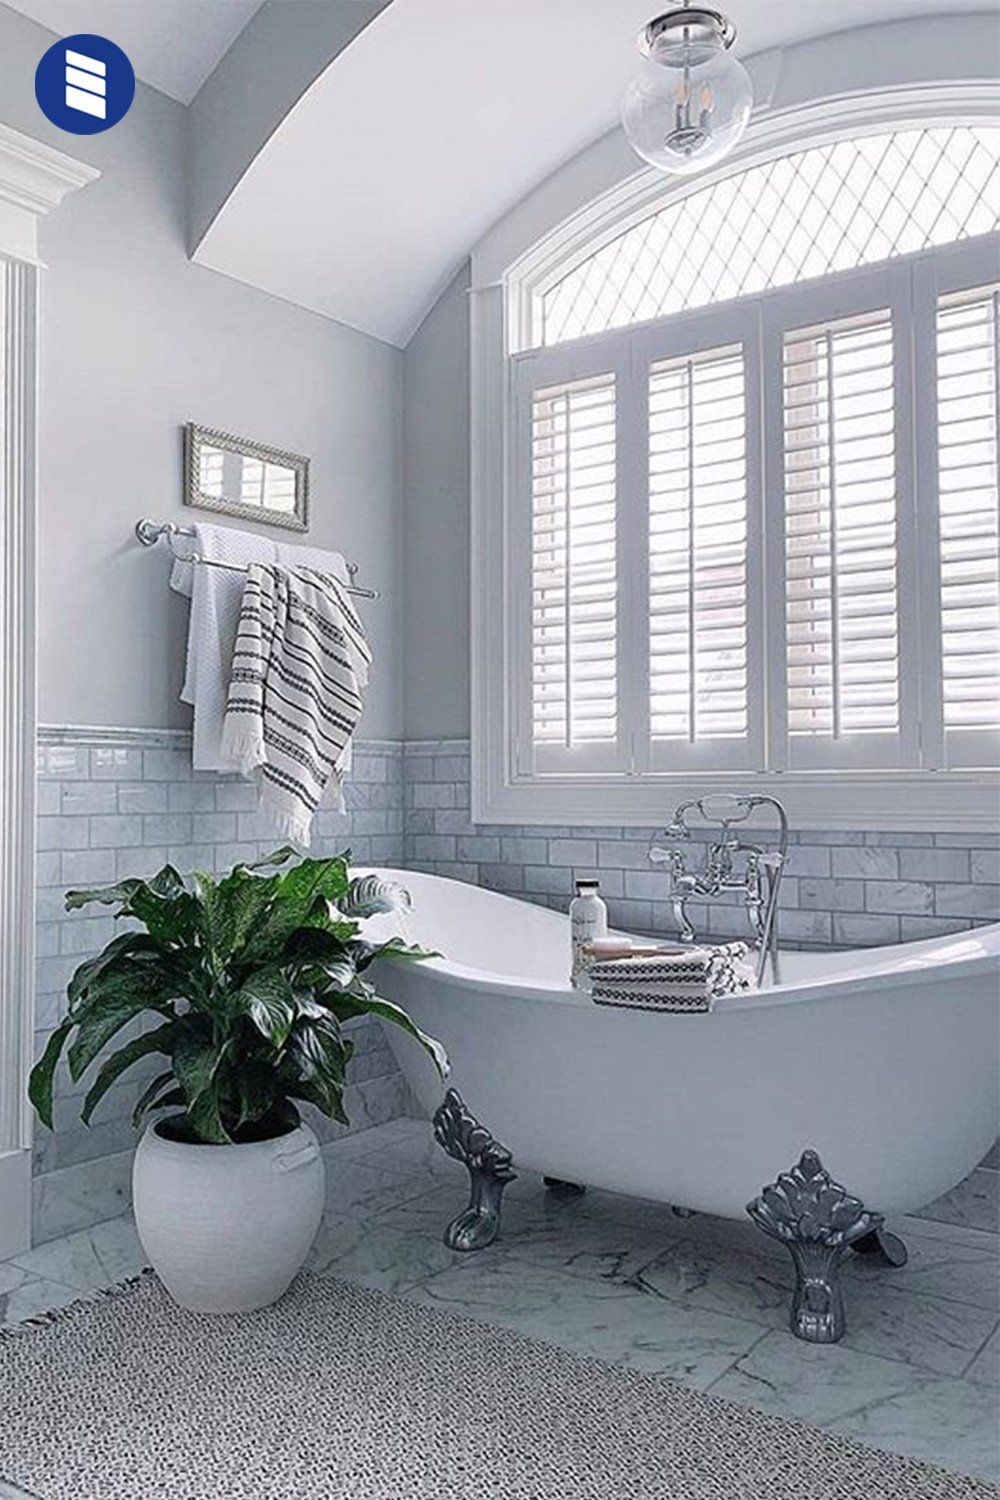 Love Is Blinds These Blinds And Shades Get The Most Love Blinds Com Bathroom Remodel Master 2020 Home Decor Trends Bathroom Interior [ jpg ]